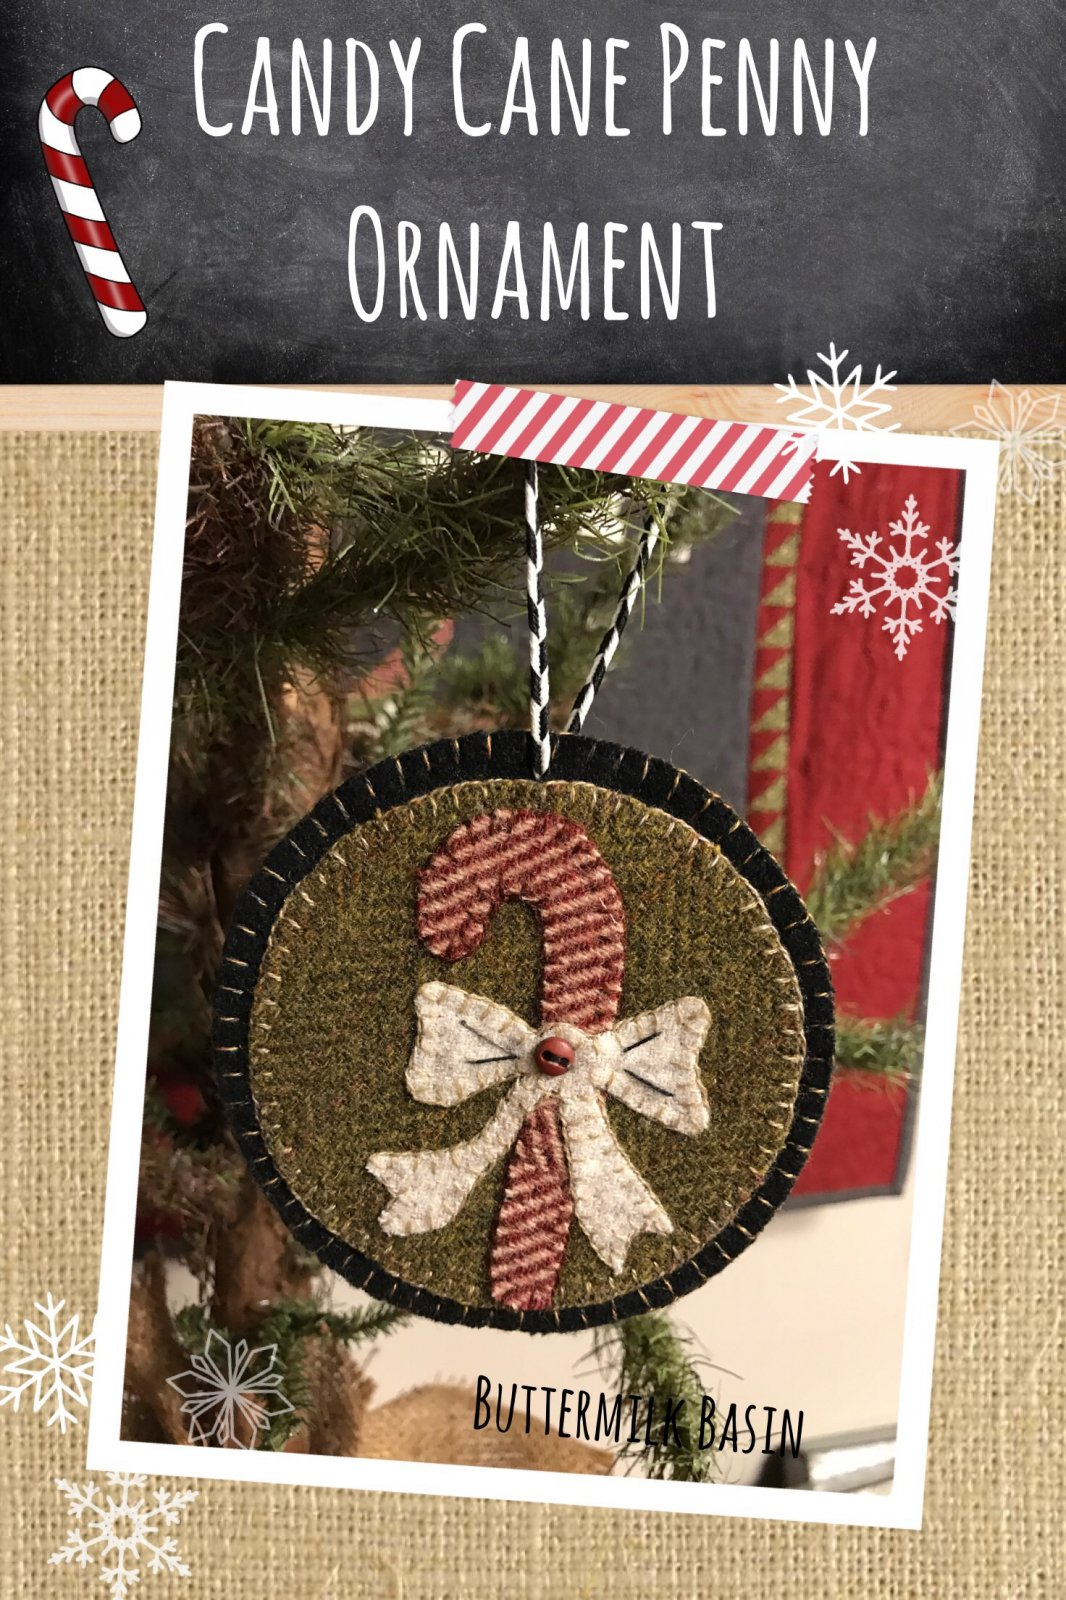 Candy Cane Penny Ornament * KIT